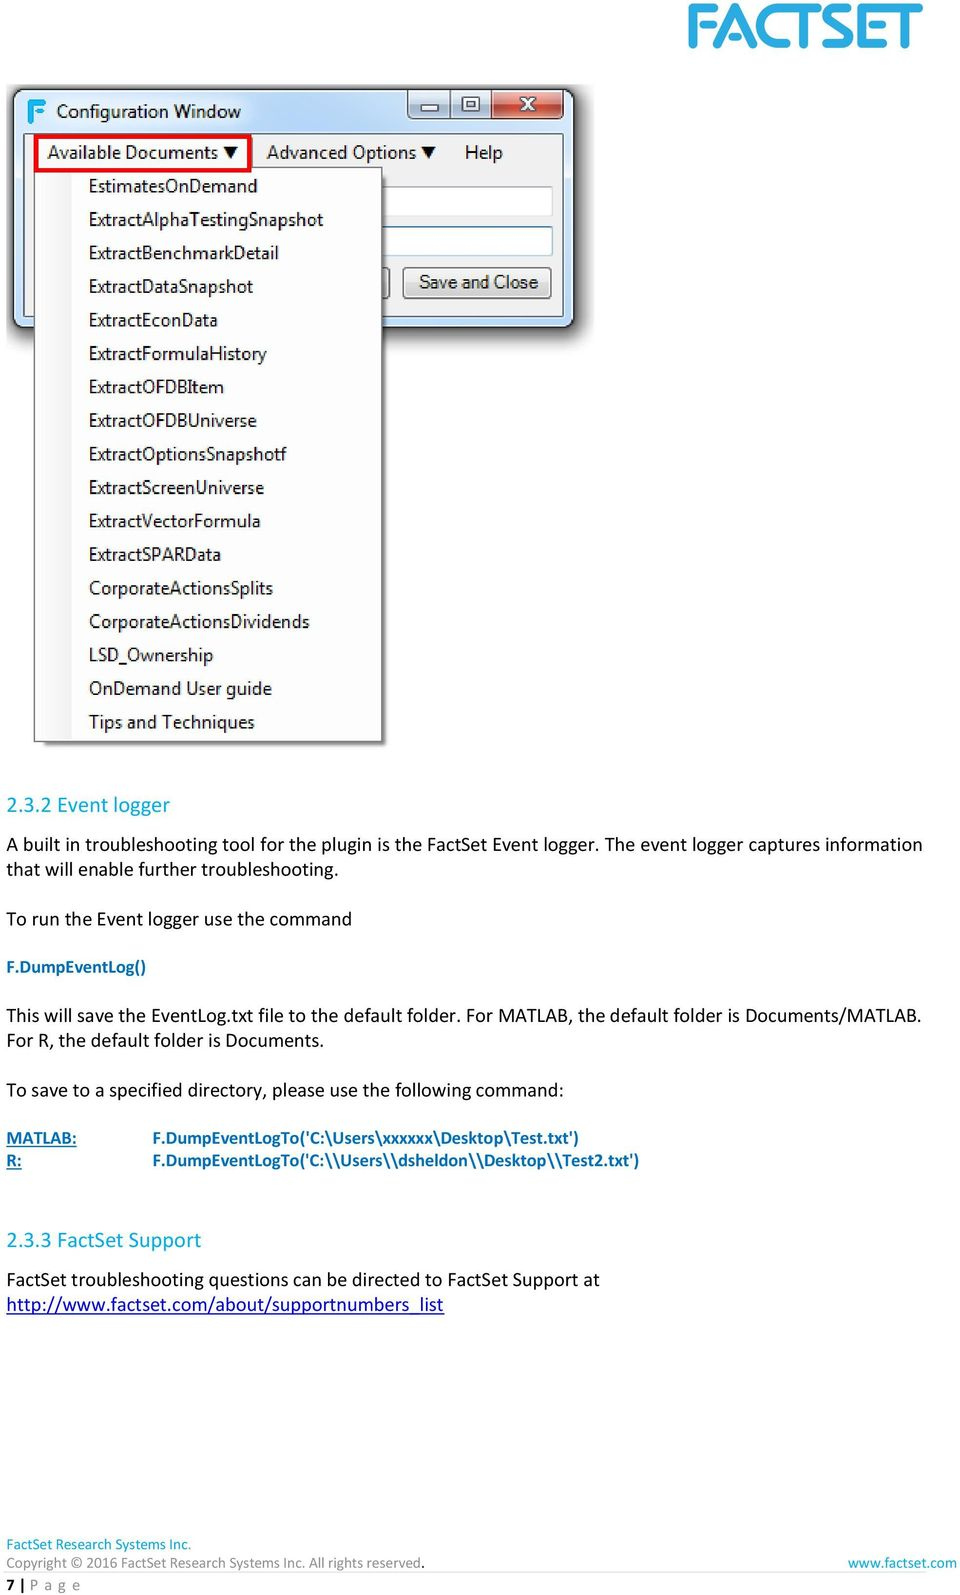 FactSet OnDemand UserGuide for MATLAB and R - PDF